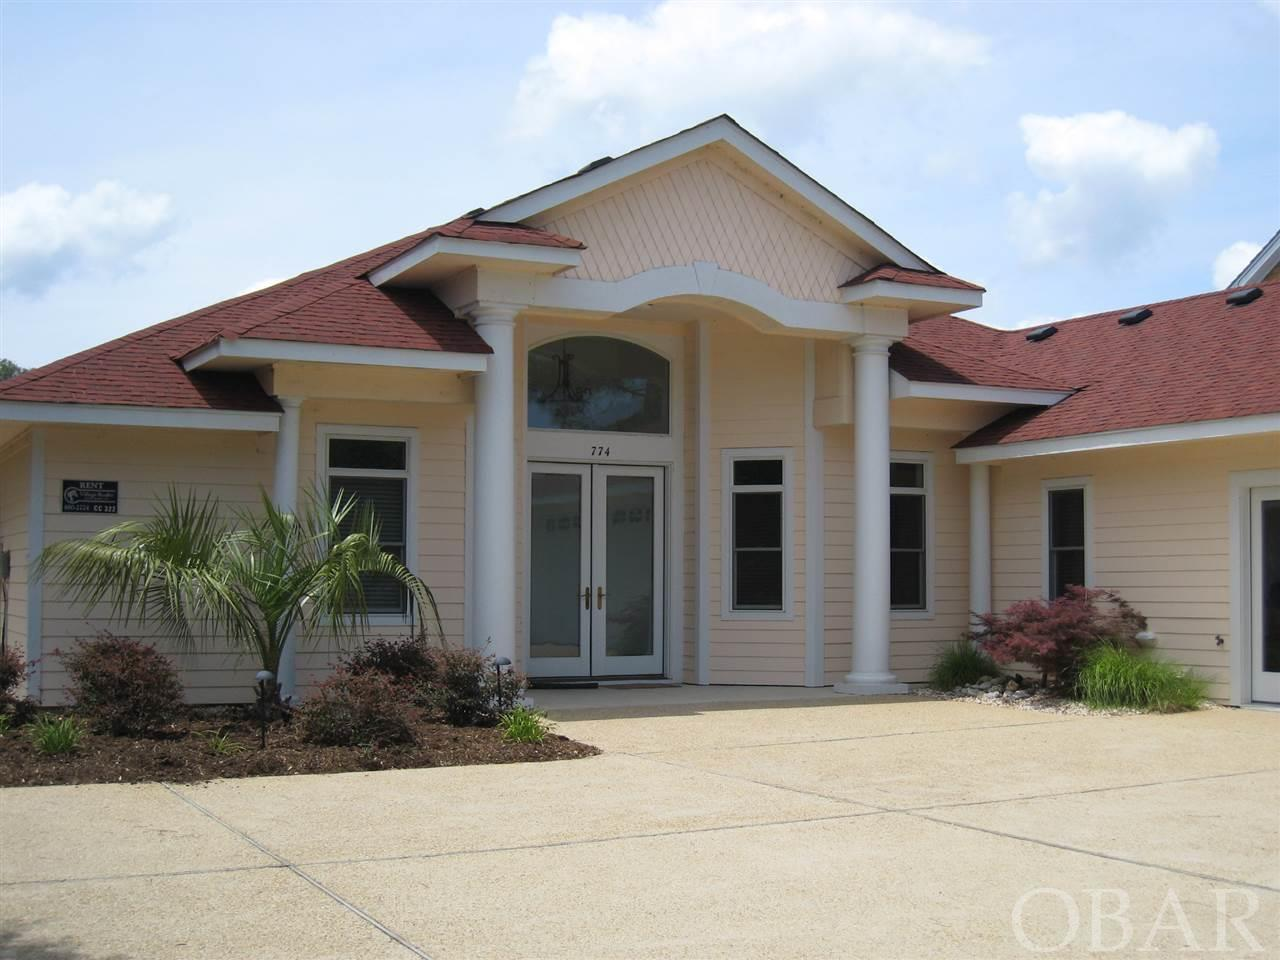 774 Hunt Club Drive,Corolla,NC 27927,4 Bedrooms Bedrooms,4 BathroomsBathrooms,Residential,Hunt Club Drive,95718